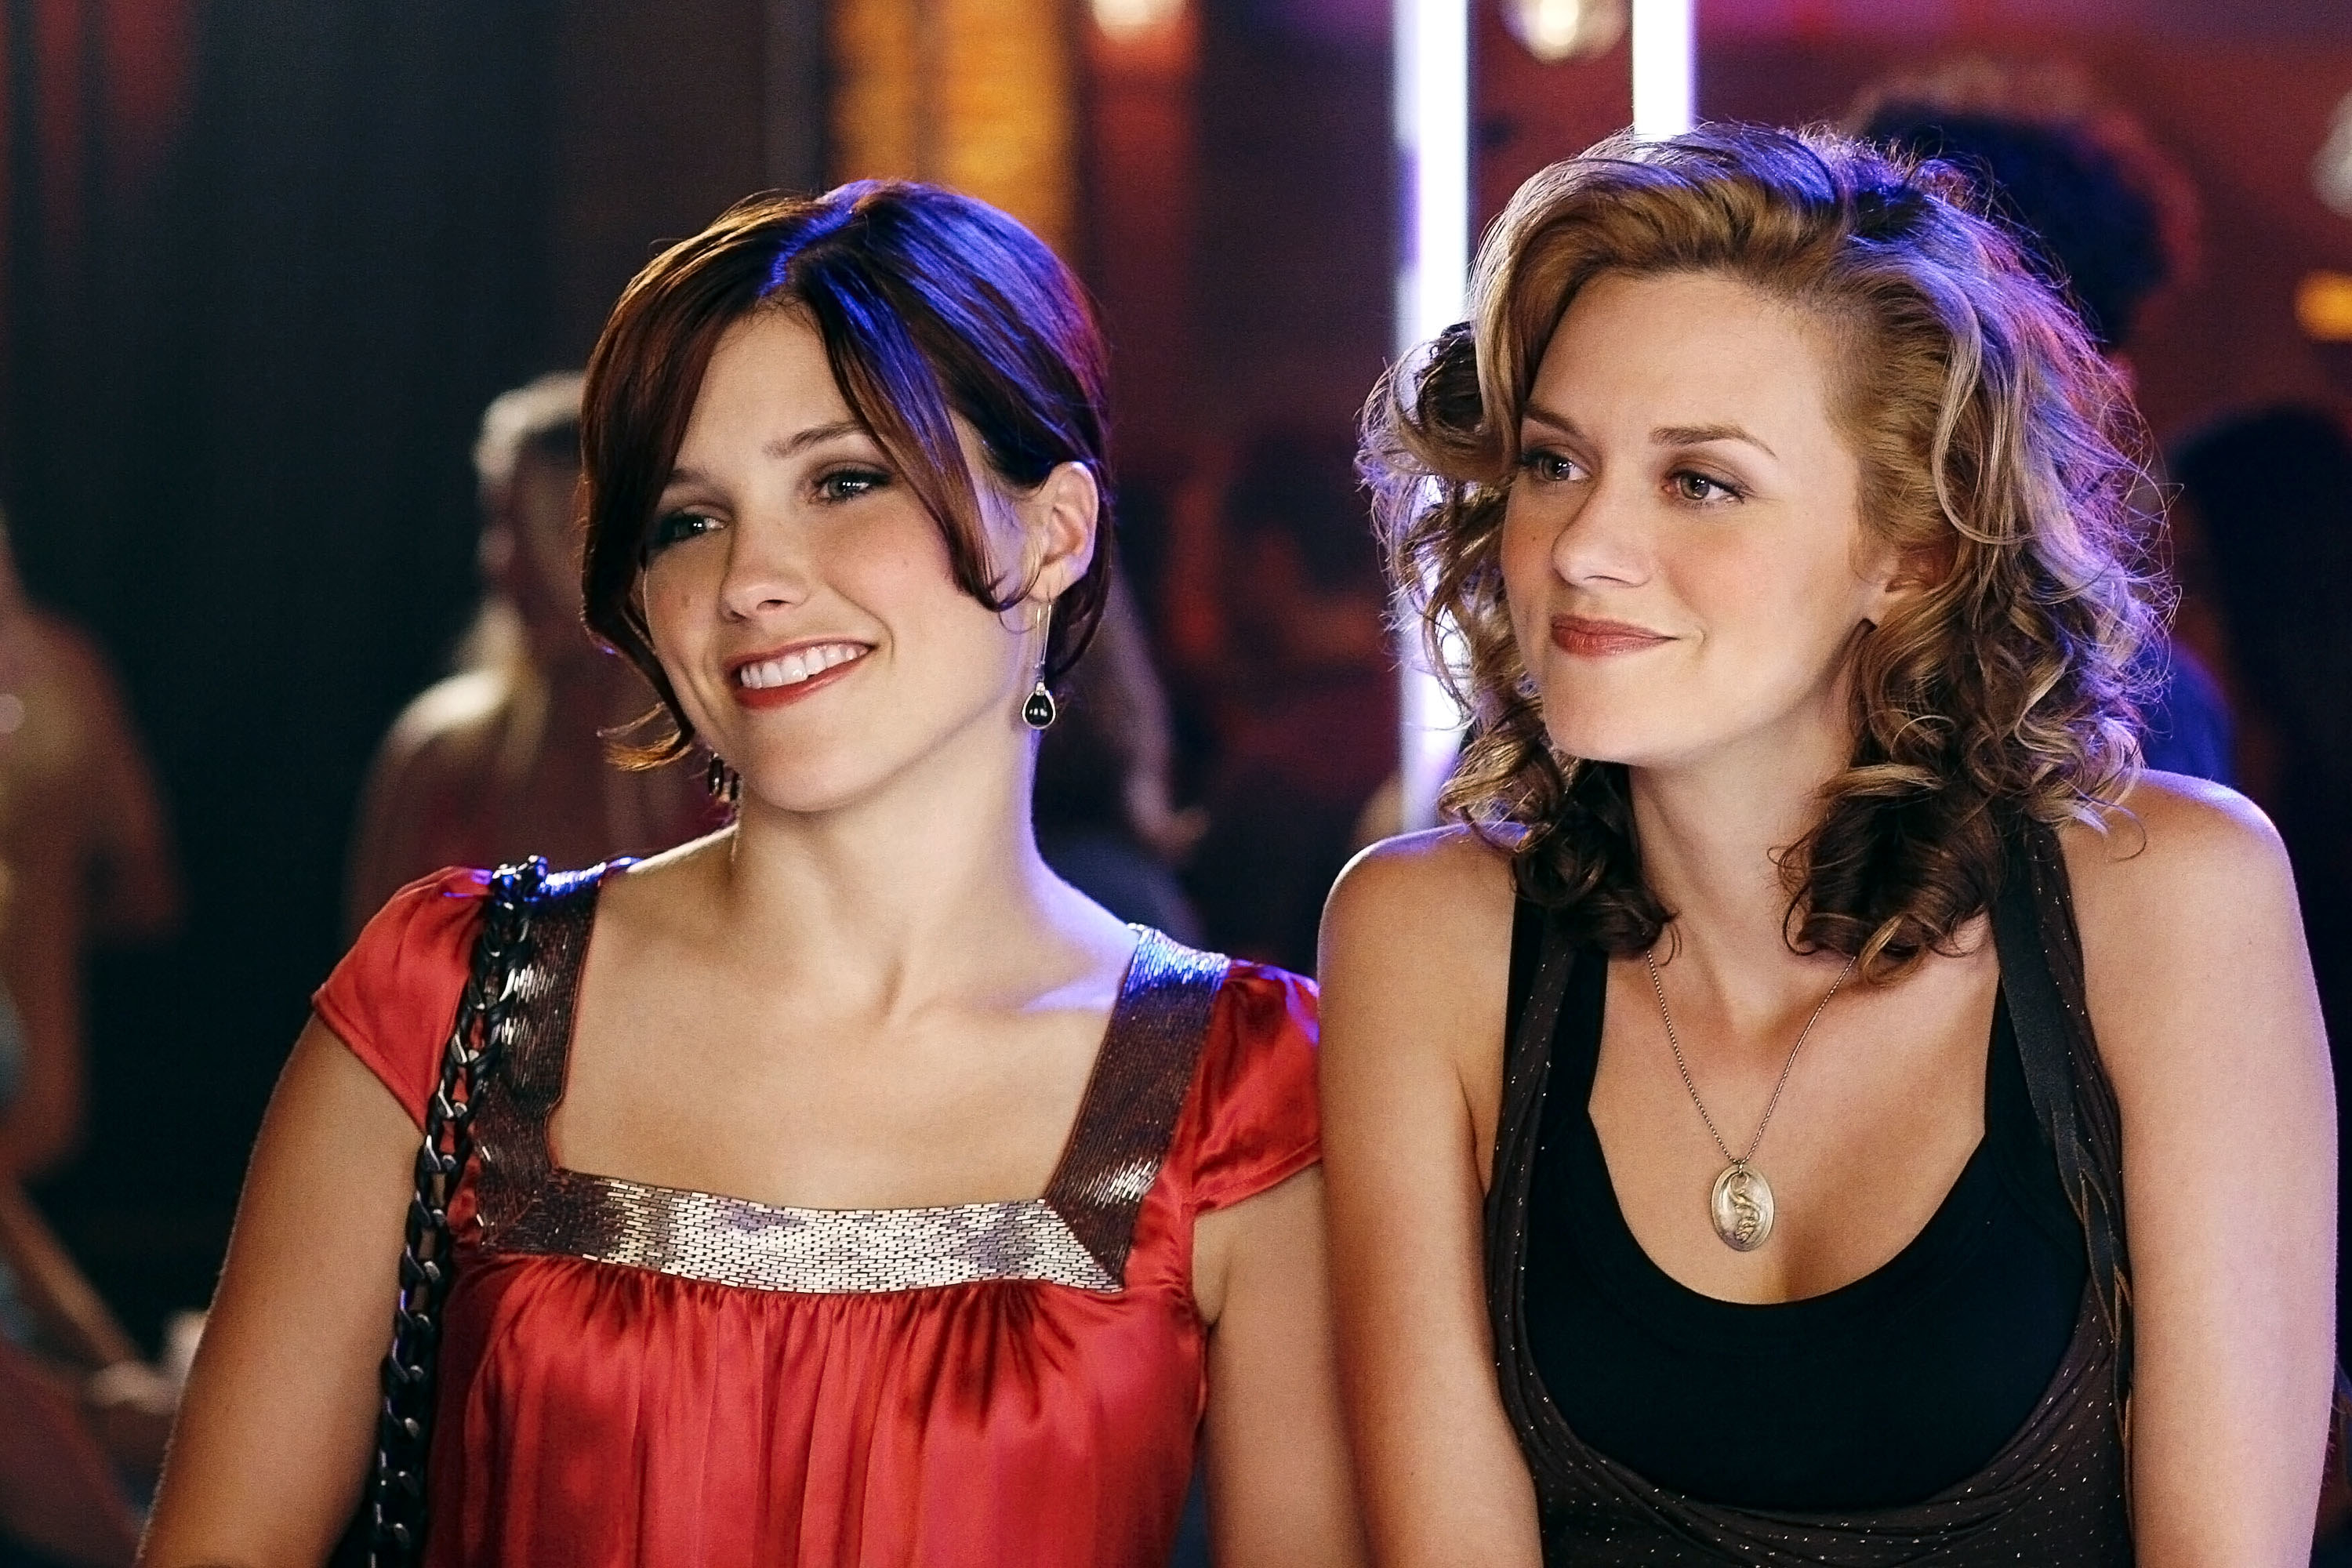 On set of One Tree Hill, actors Sophia Bush and Hilarie Burton smile, dressed up in club attire